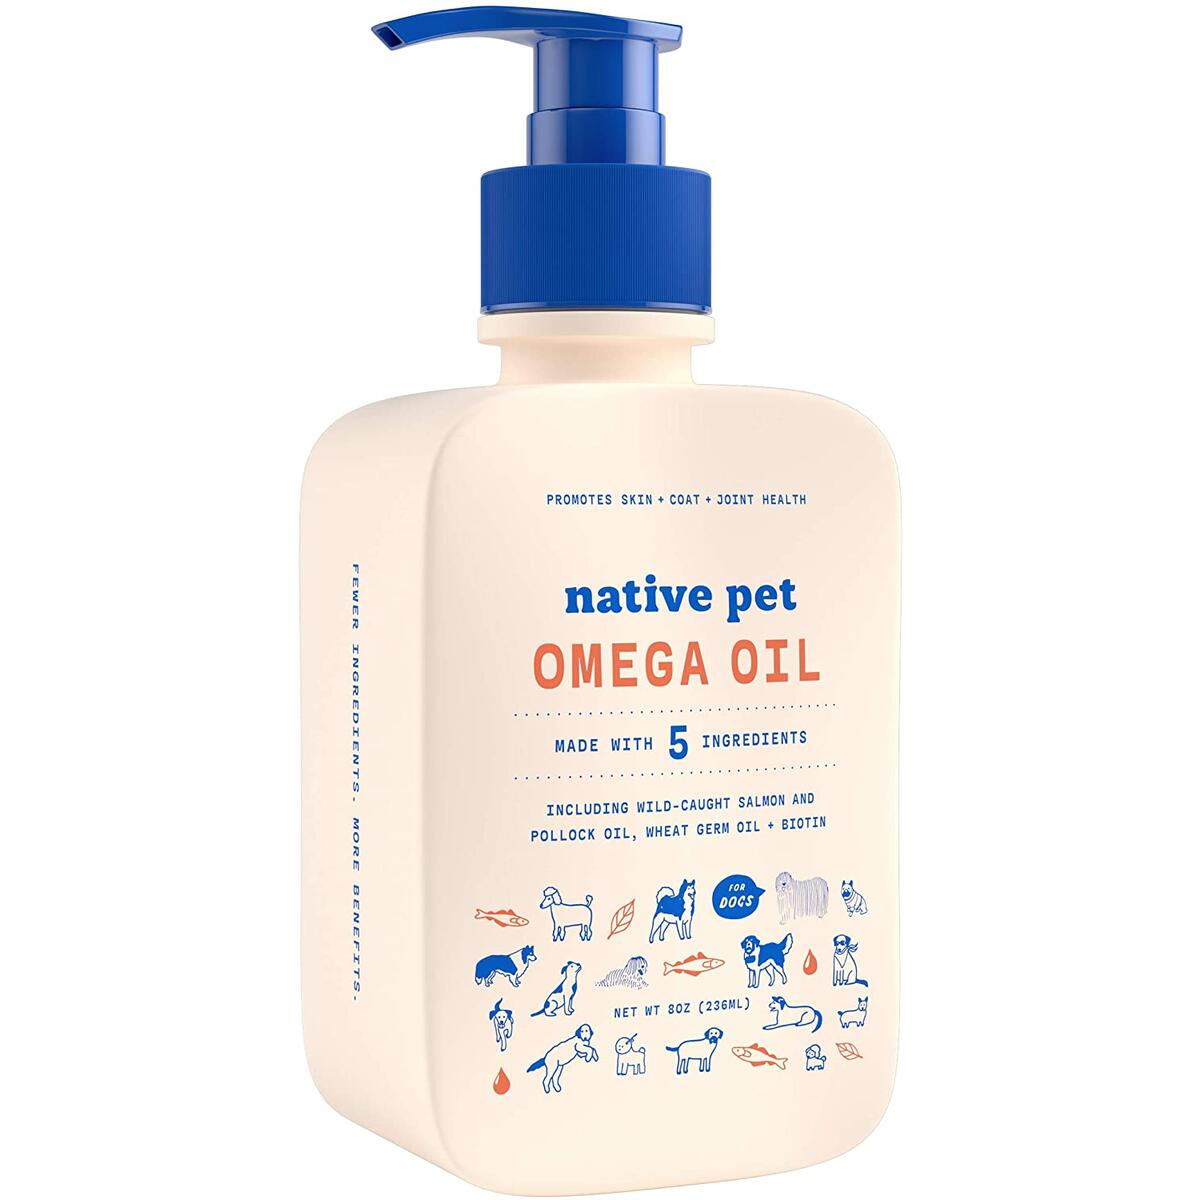 Native Pet Omega Oil for Dogs - Omega 3 Wild Caught Fish Oil Supplement for Dogs - All-natural skin & coat, mobility, & heart health supplement!